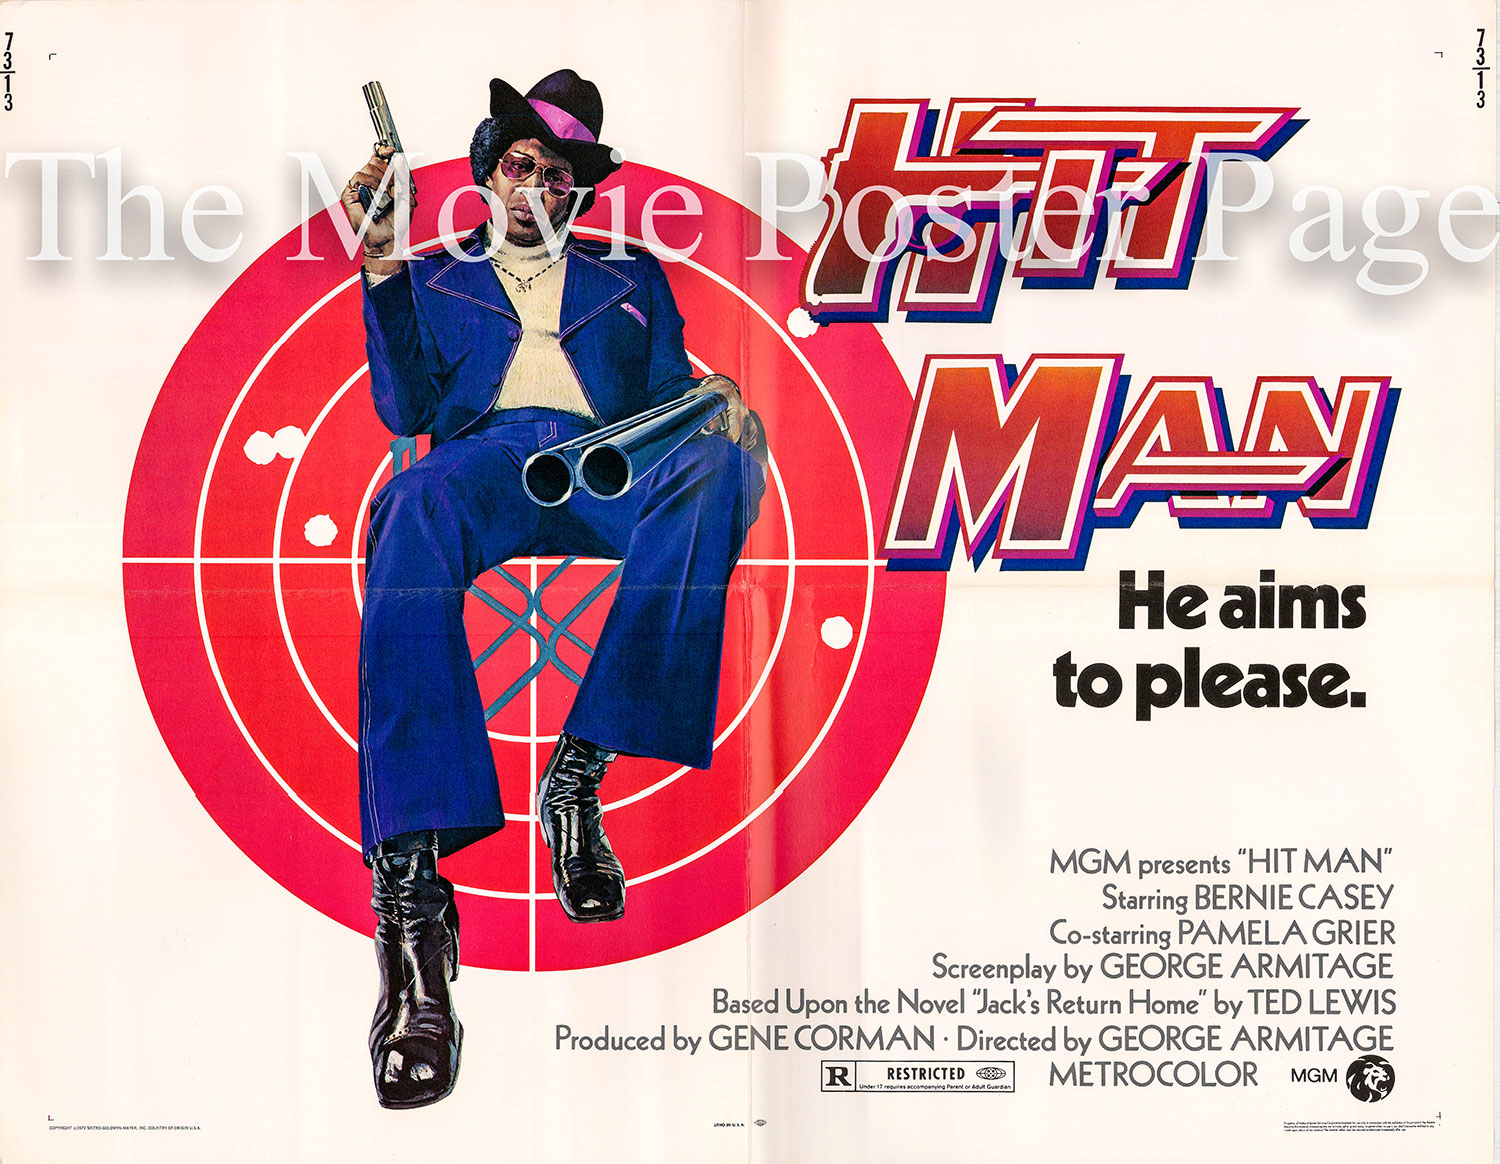 Pictured is a US promotional half sheet for the 1973 George Armitage film Hit Man starring Bernie Casey.